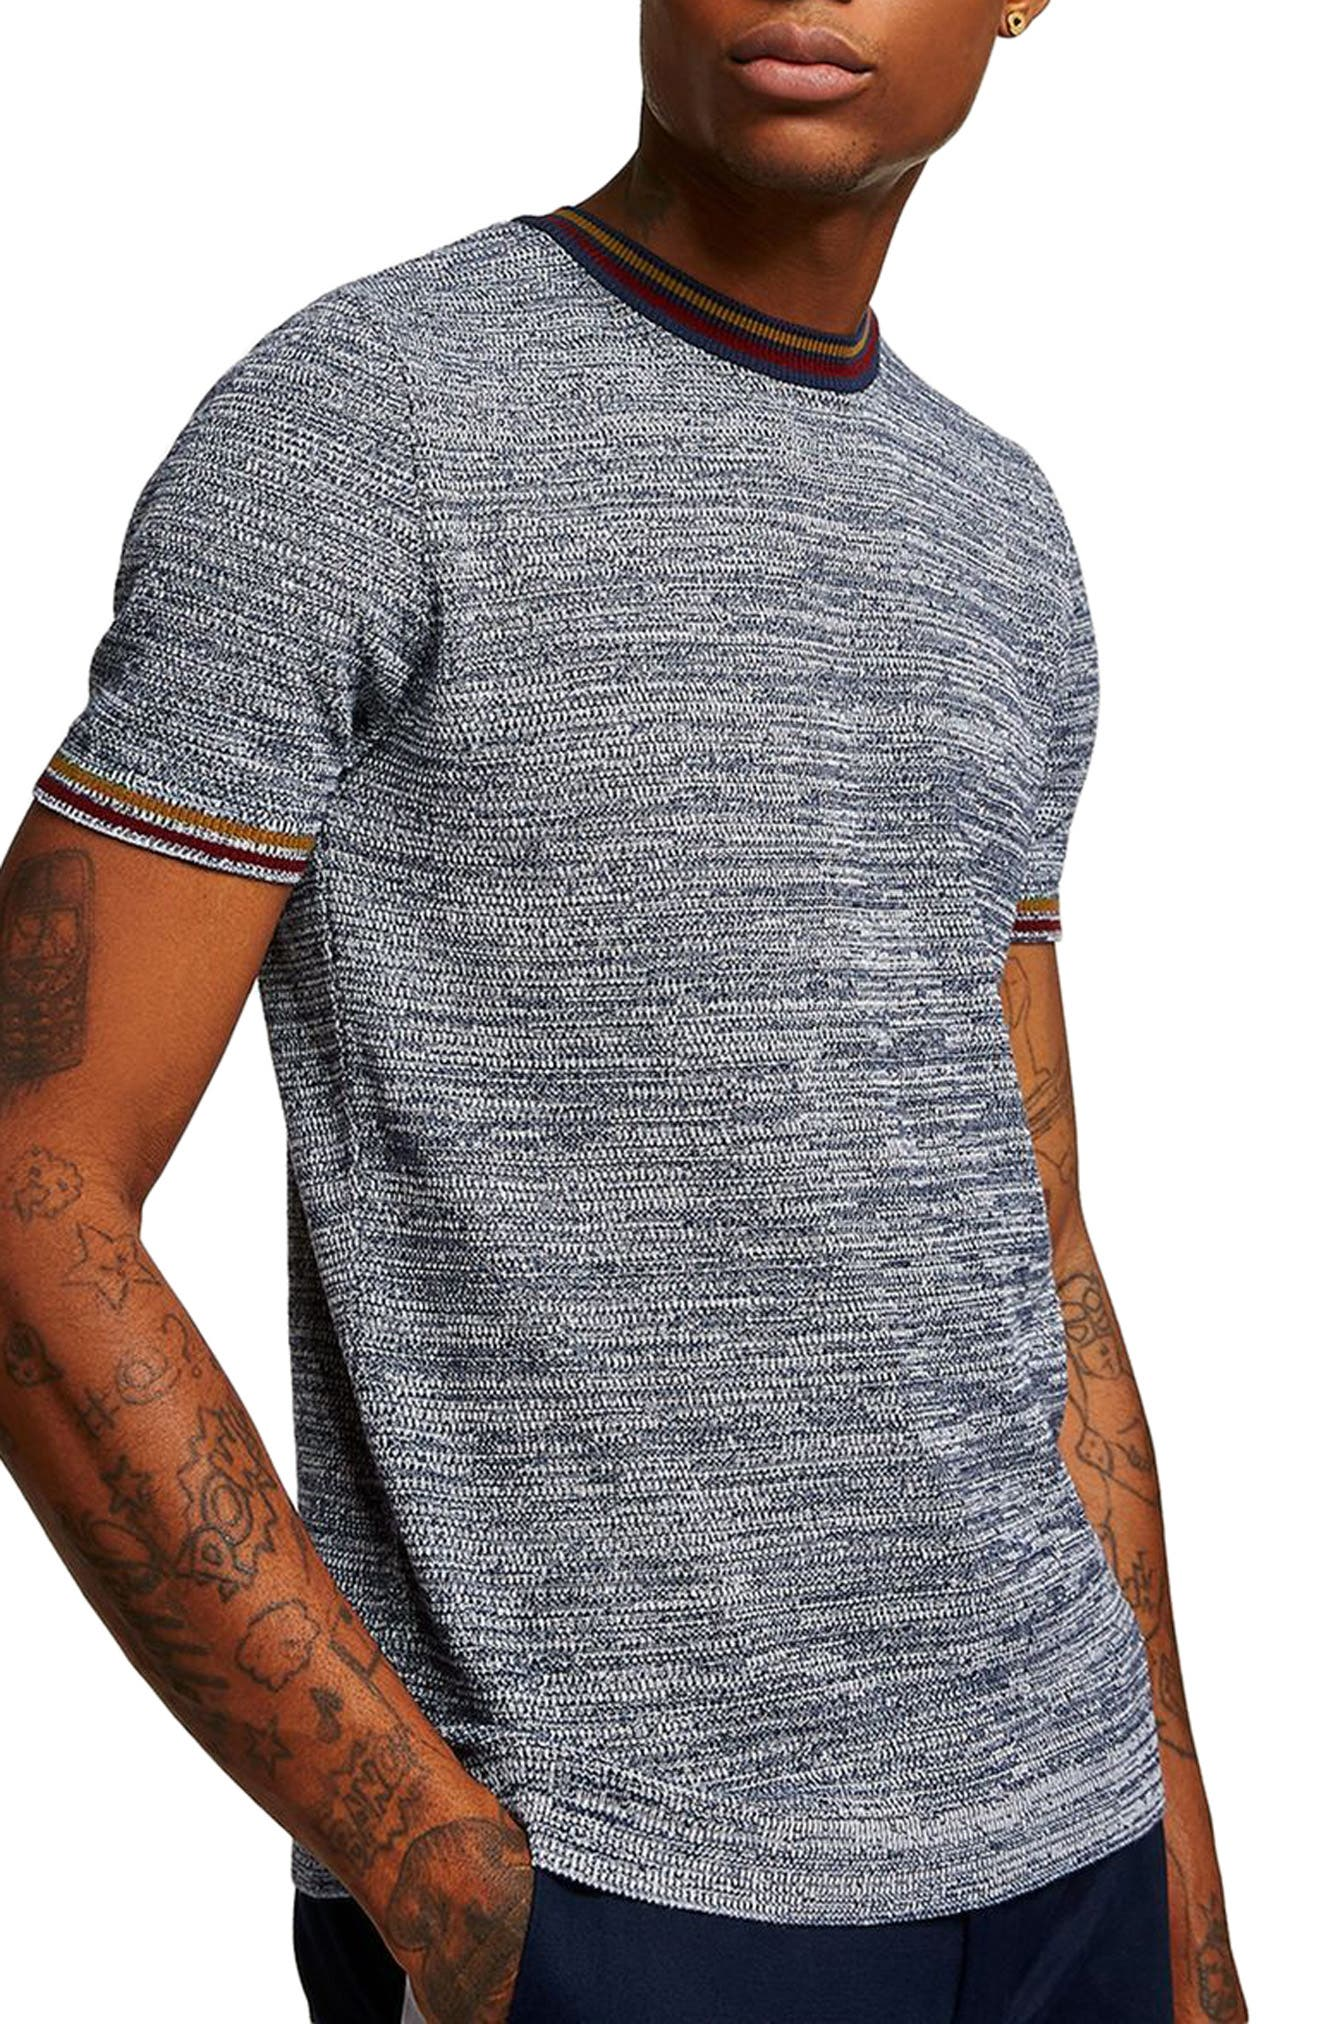 Slim Fit Knit T-Shirt,                         Main,                         color, Grey Multi